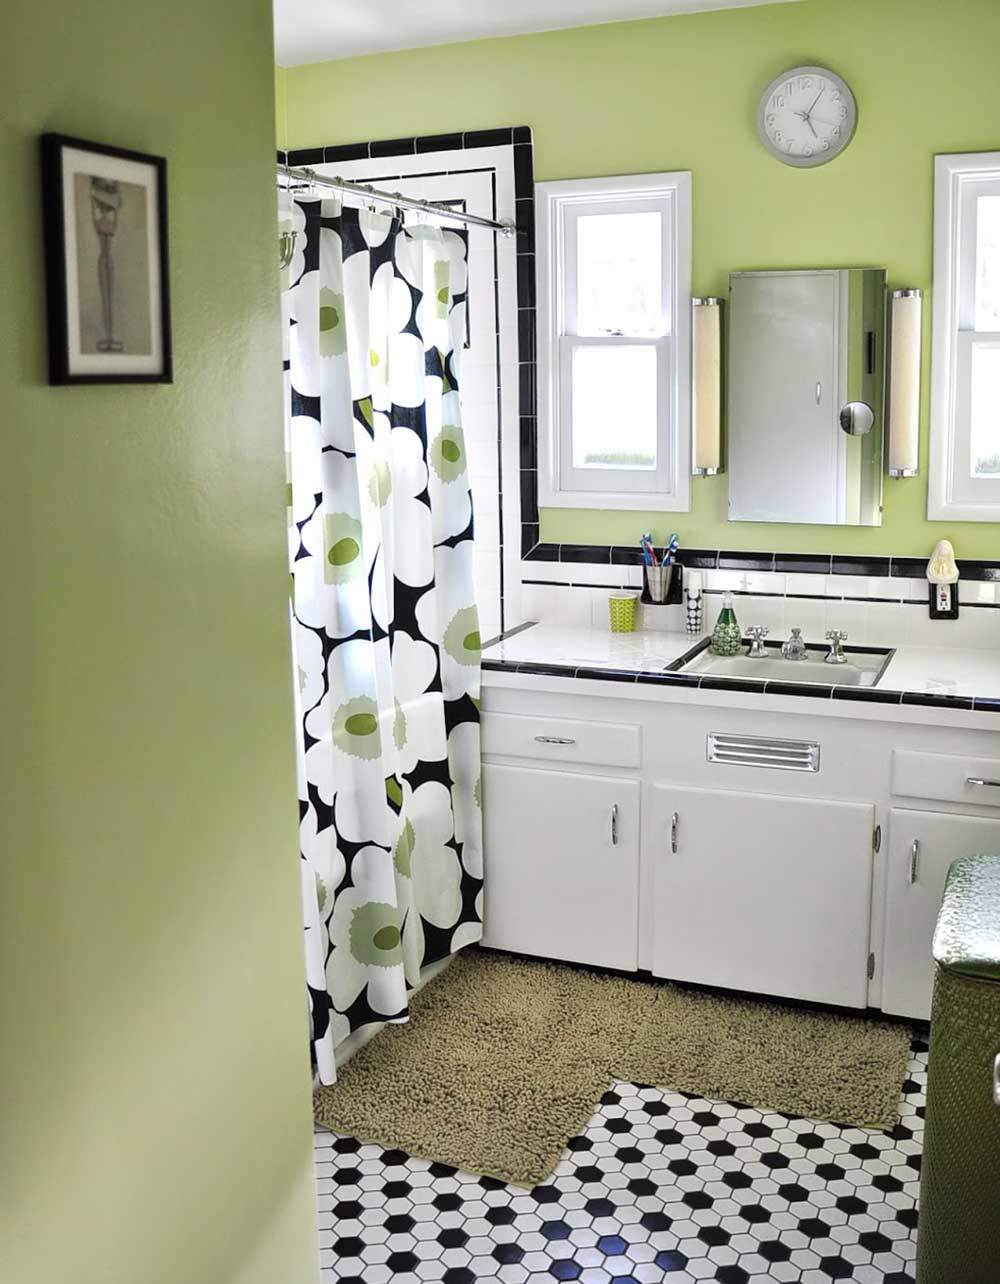 dawn creates a classic black and white tile bathroom